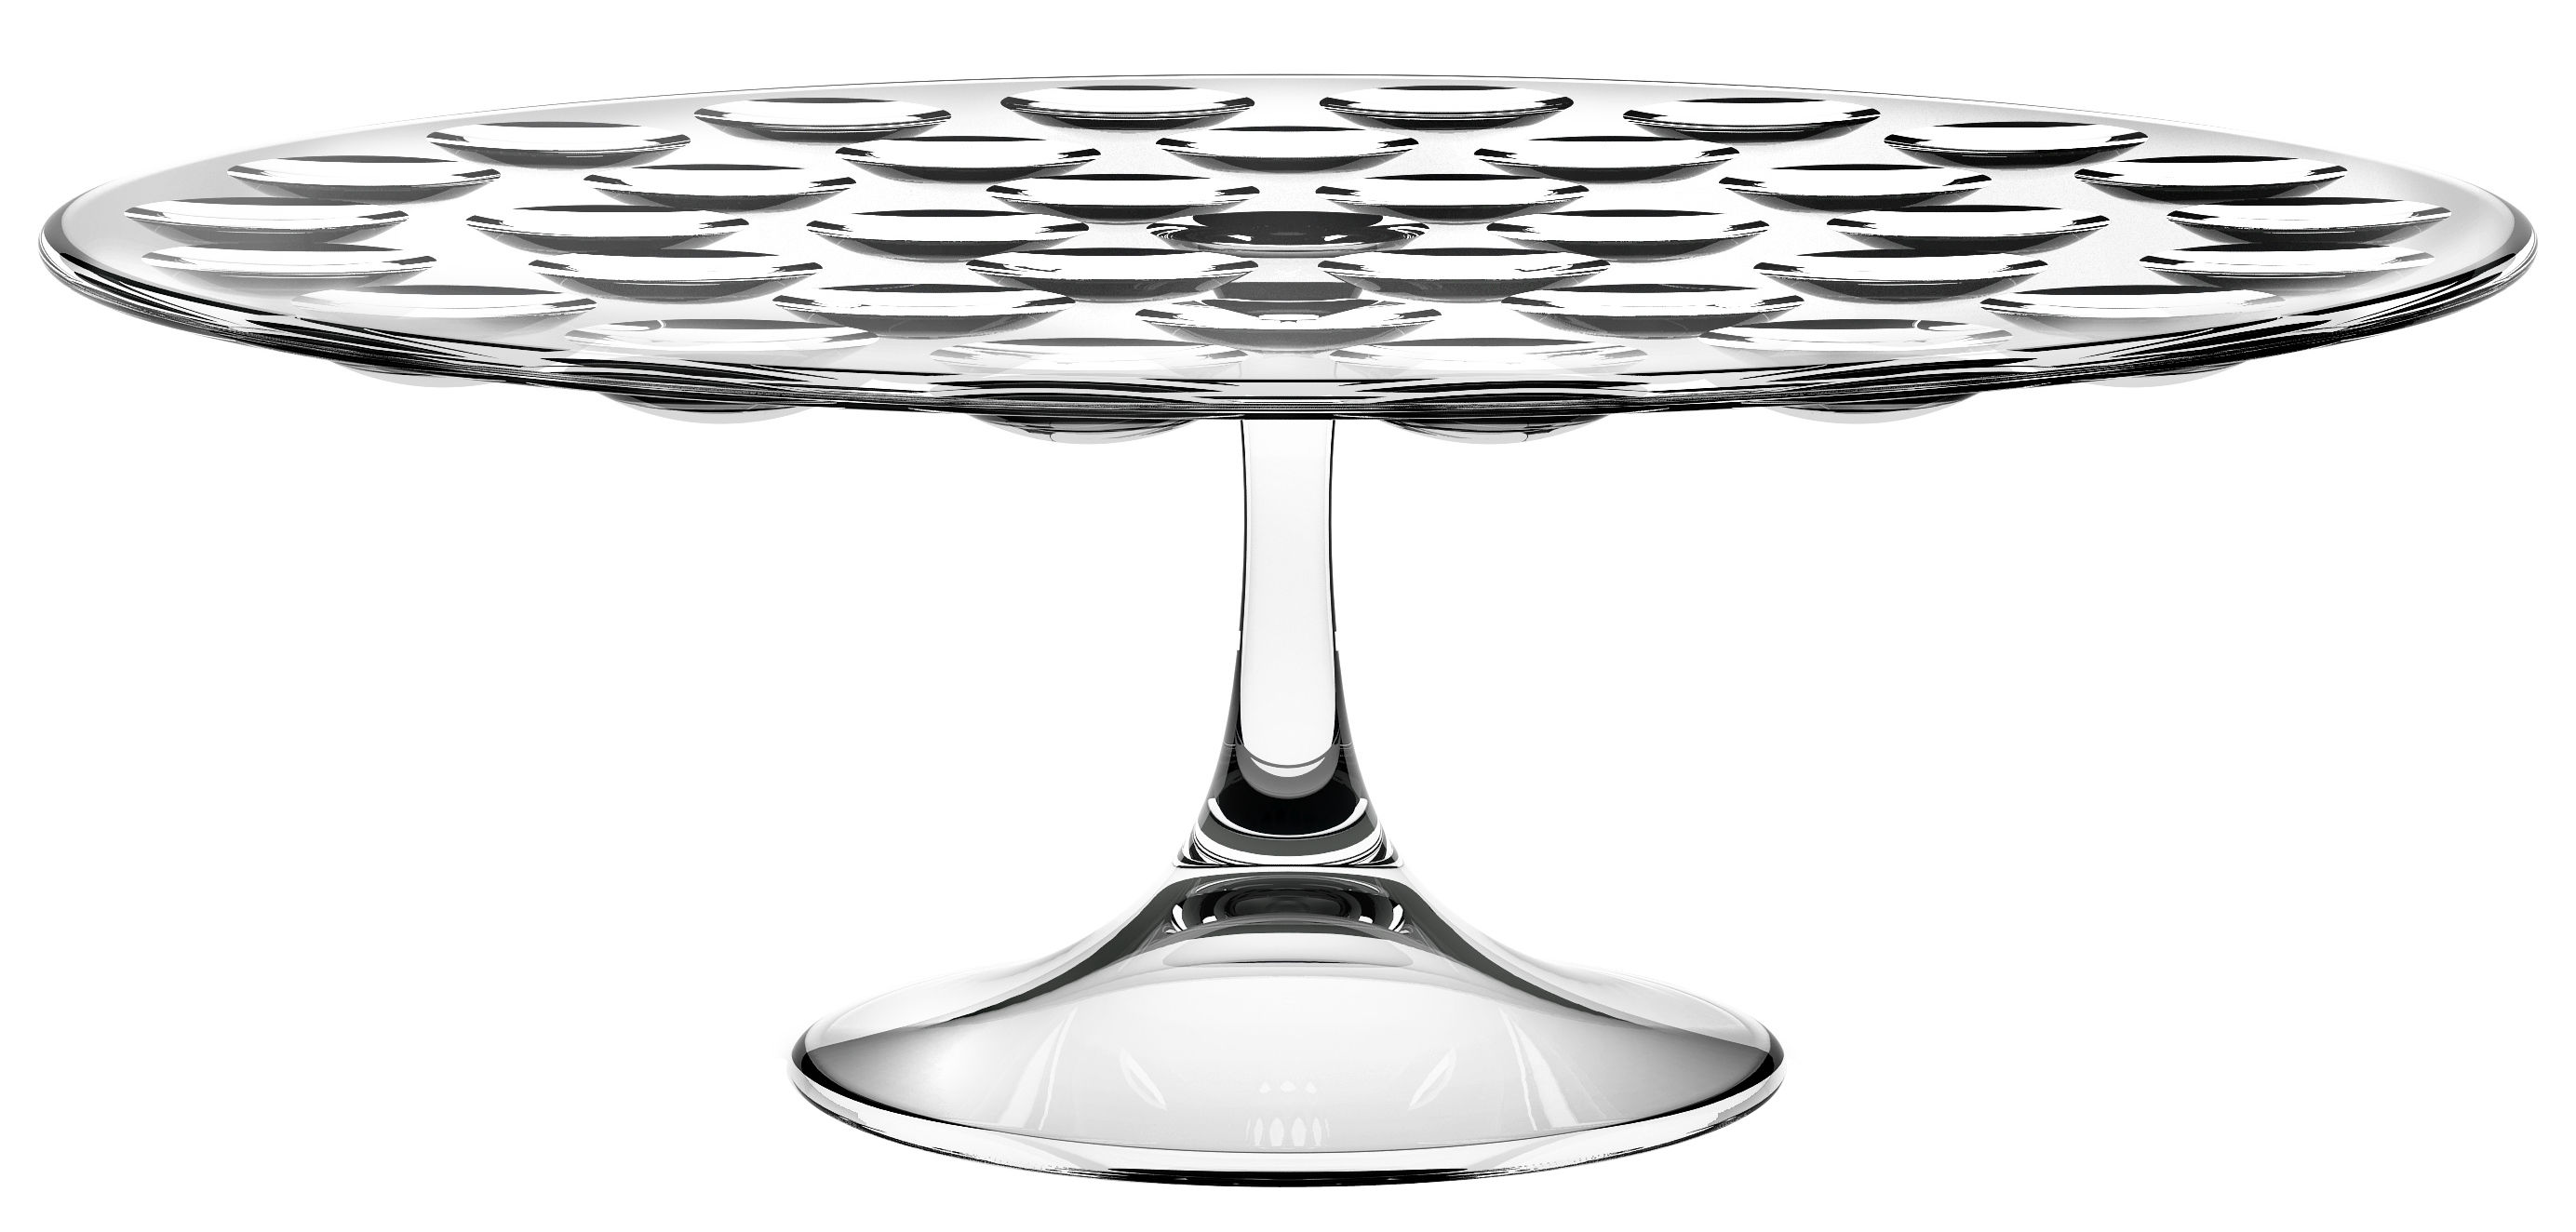 Tableware - Serving Plates - Bolle Presentation dish by Italesse - Transparent - Glass